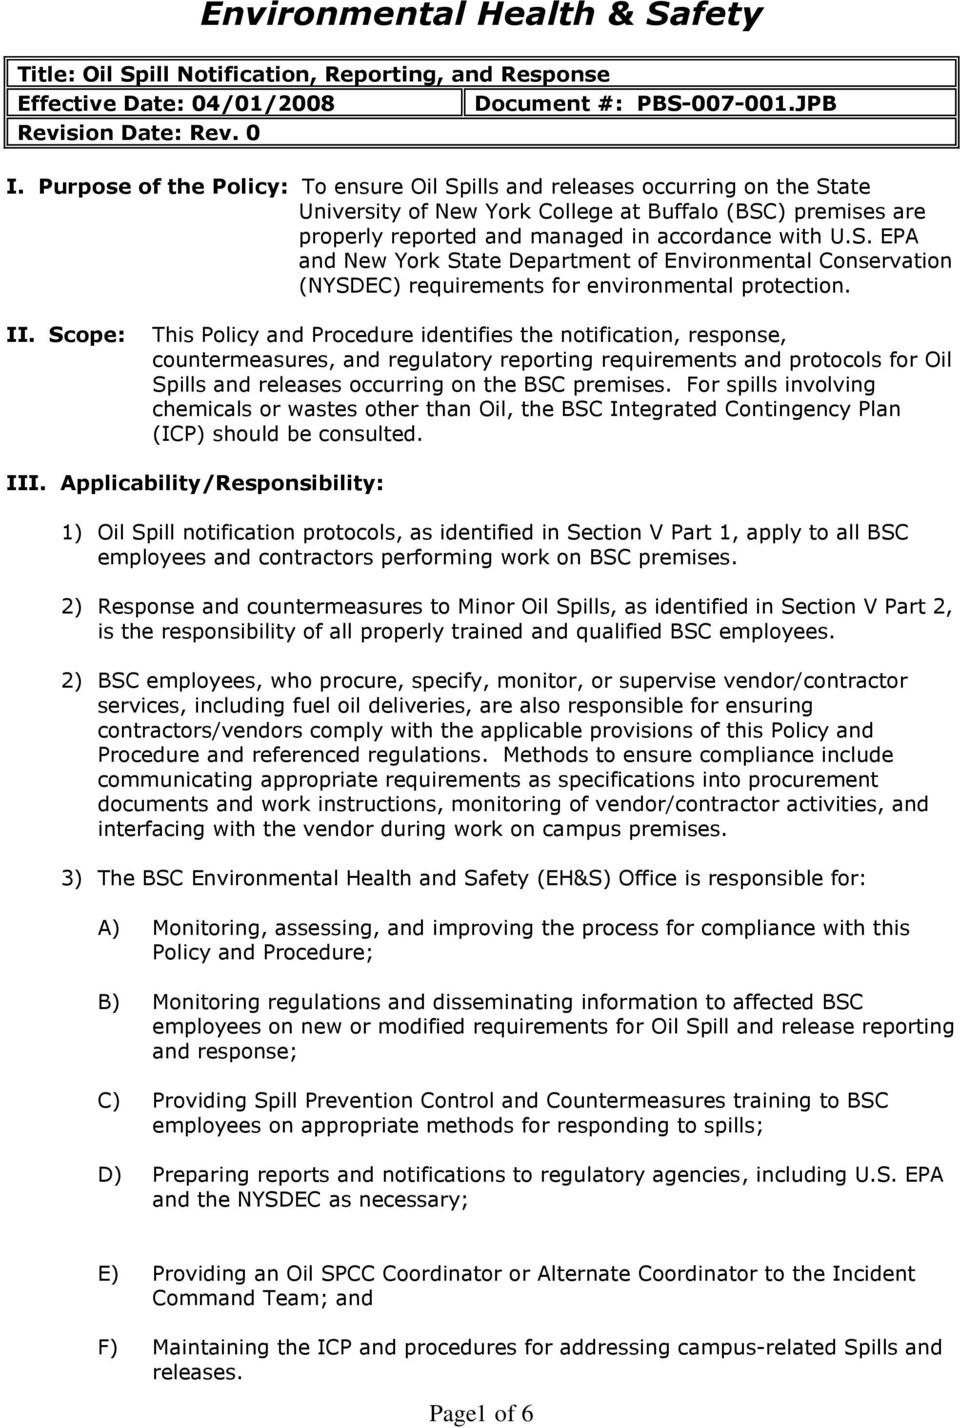 II. Scope: This Policy and Procedure identifies the notification, response, countermeasures, and regulatory reporting requirements and protocols for Oil Spills and releases occurring on the BSC